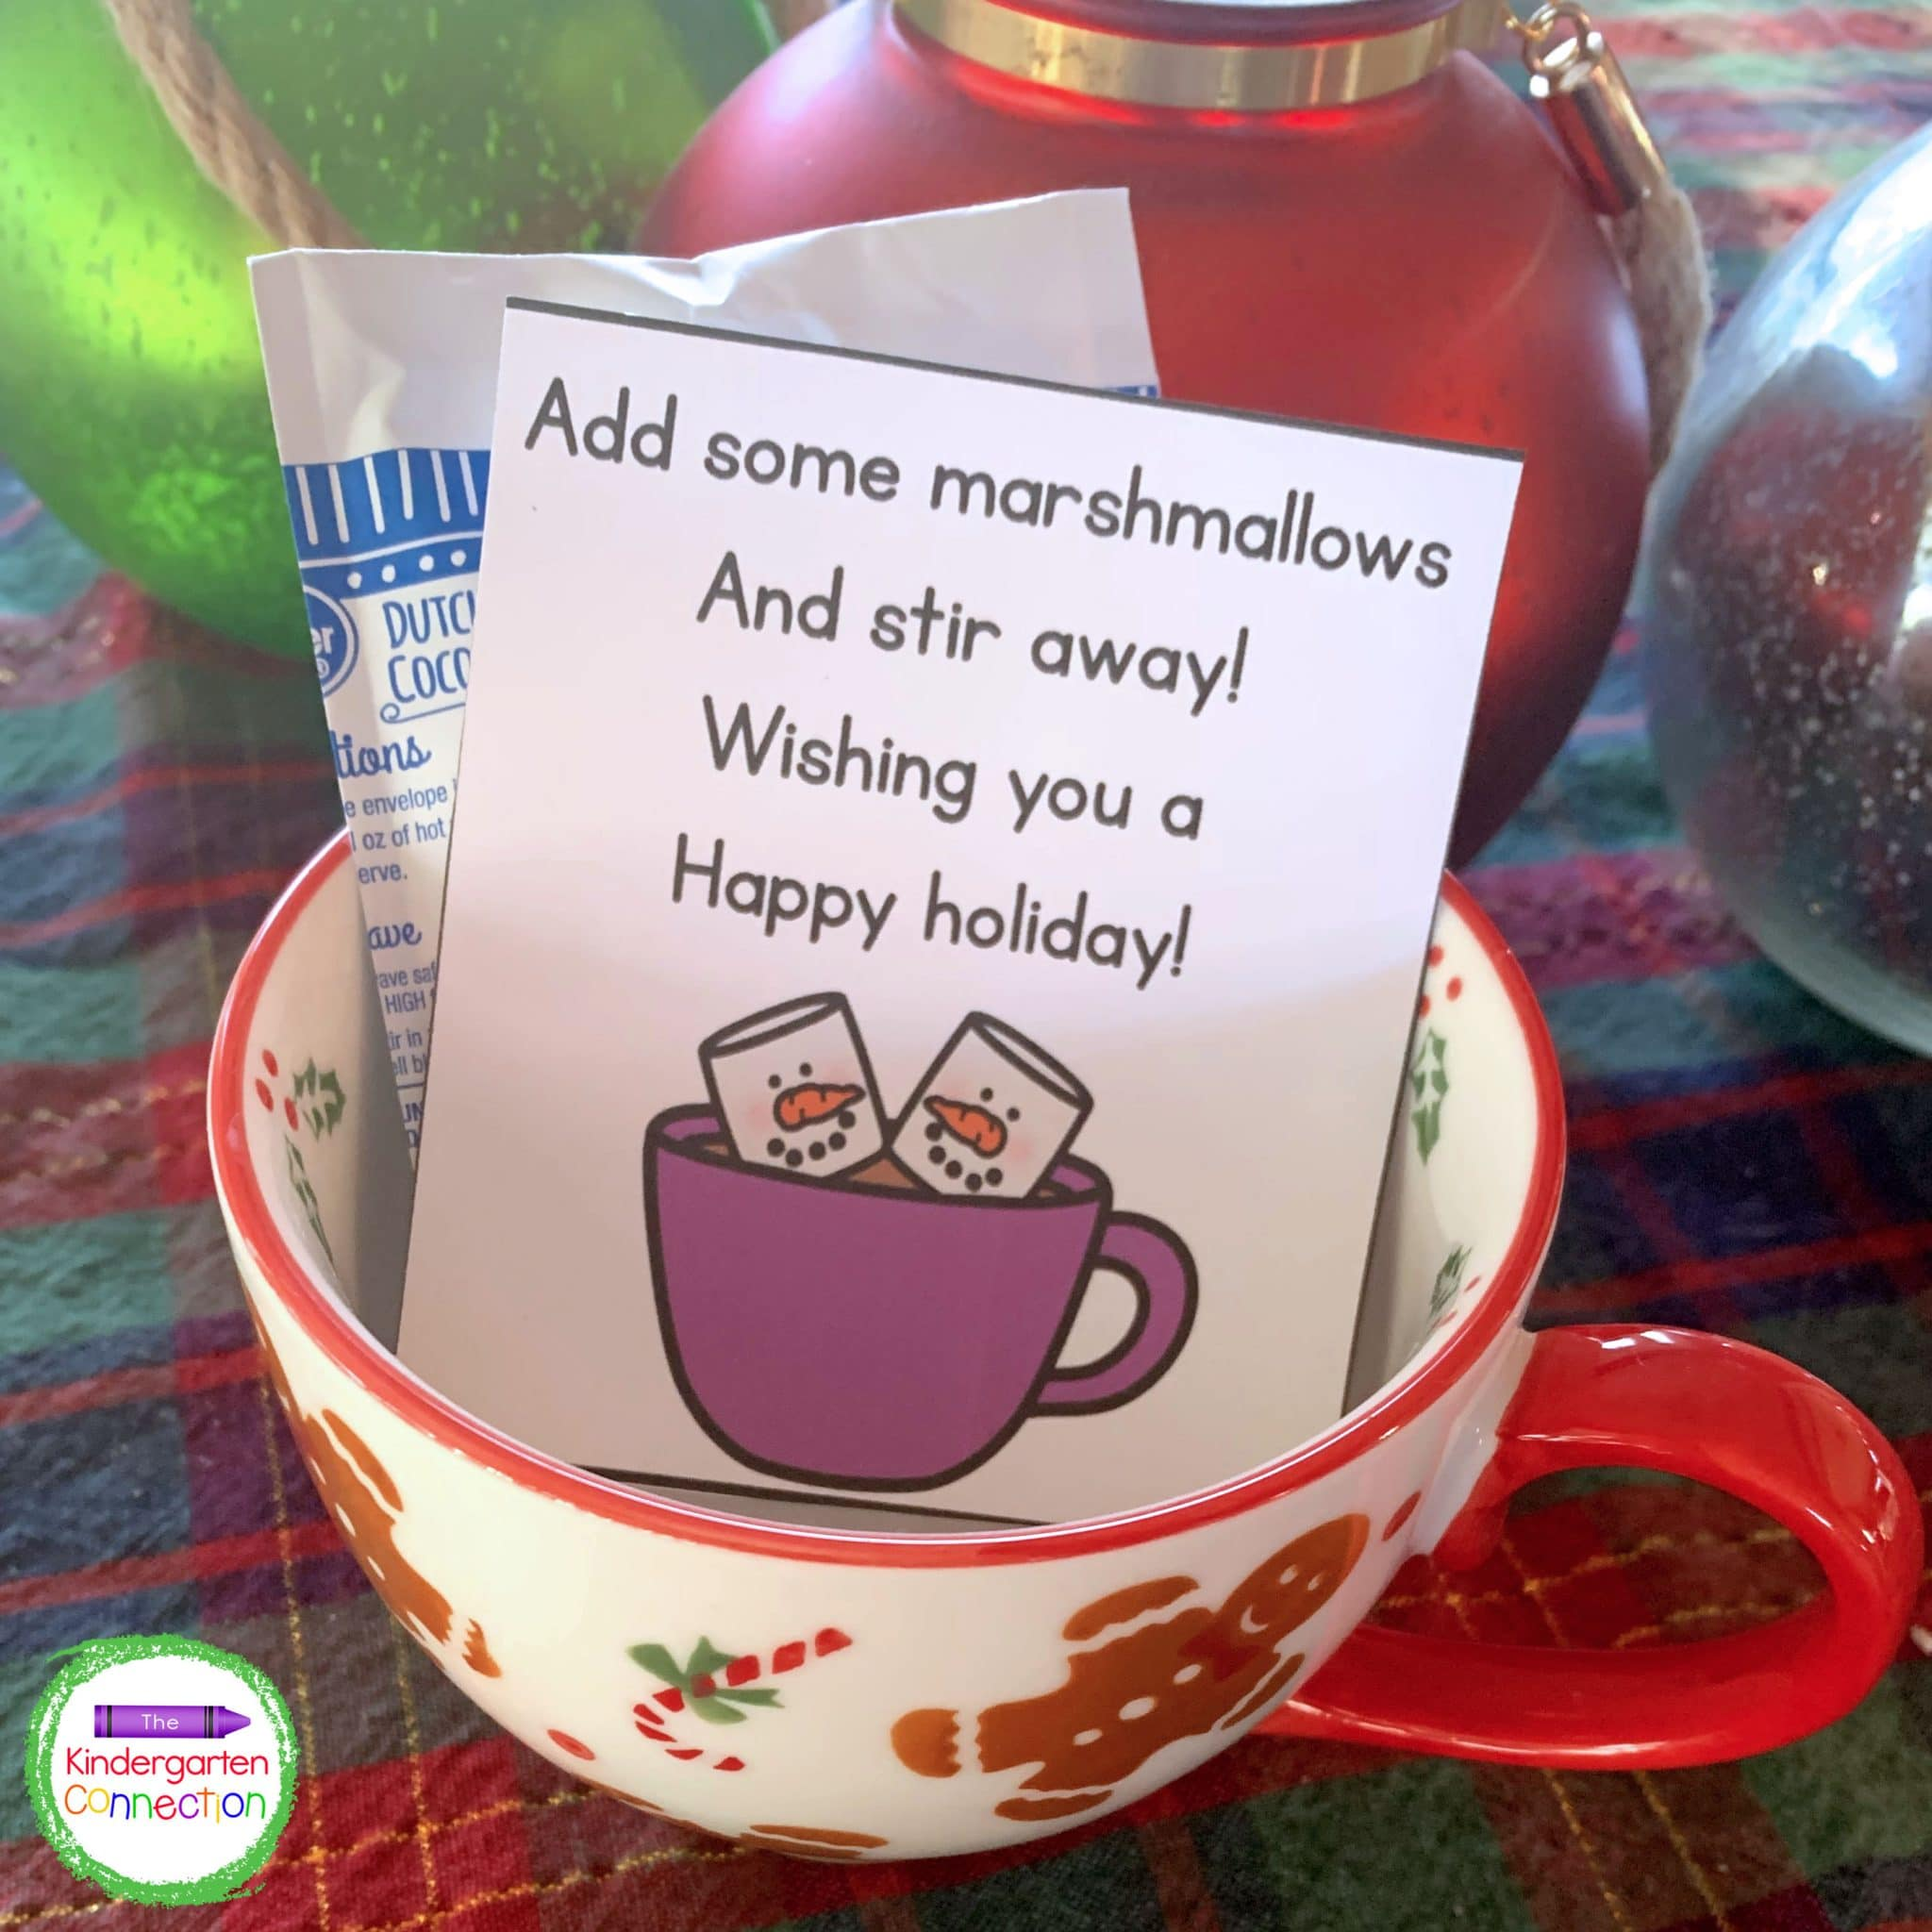 Attach the gift tags to a packet of hot cocoa and you have a simple and inexpensive student gift.